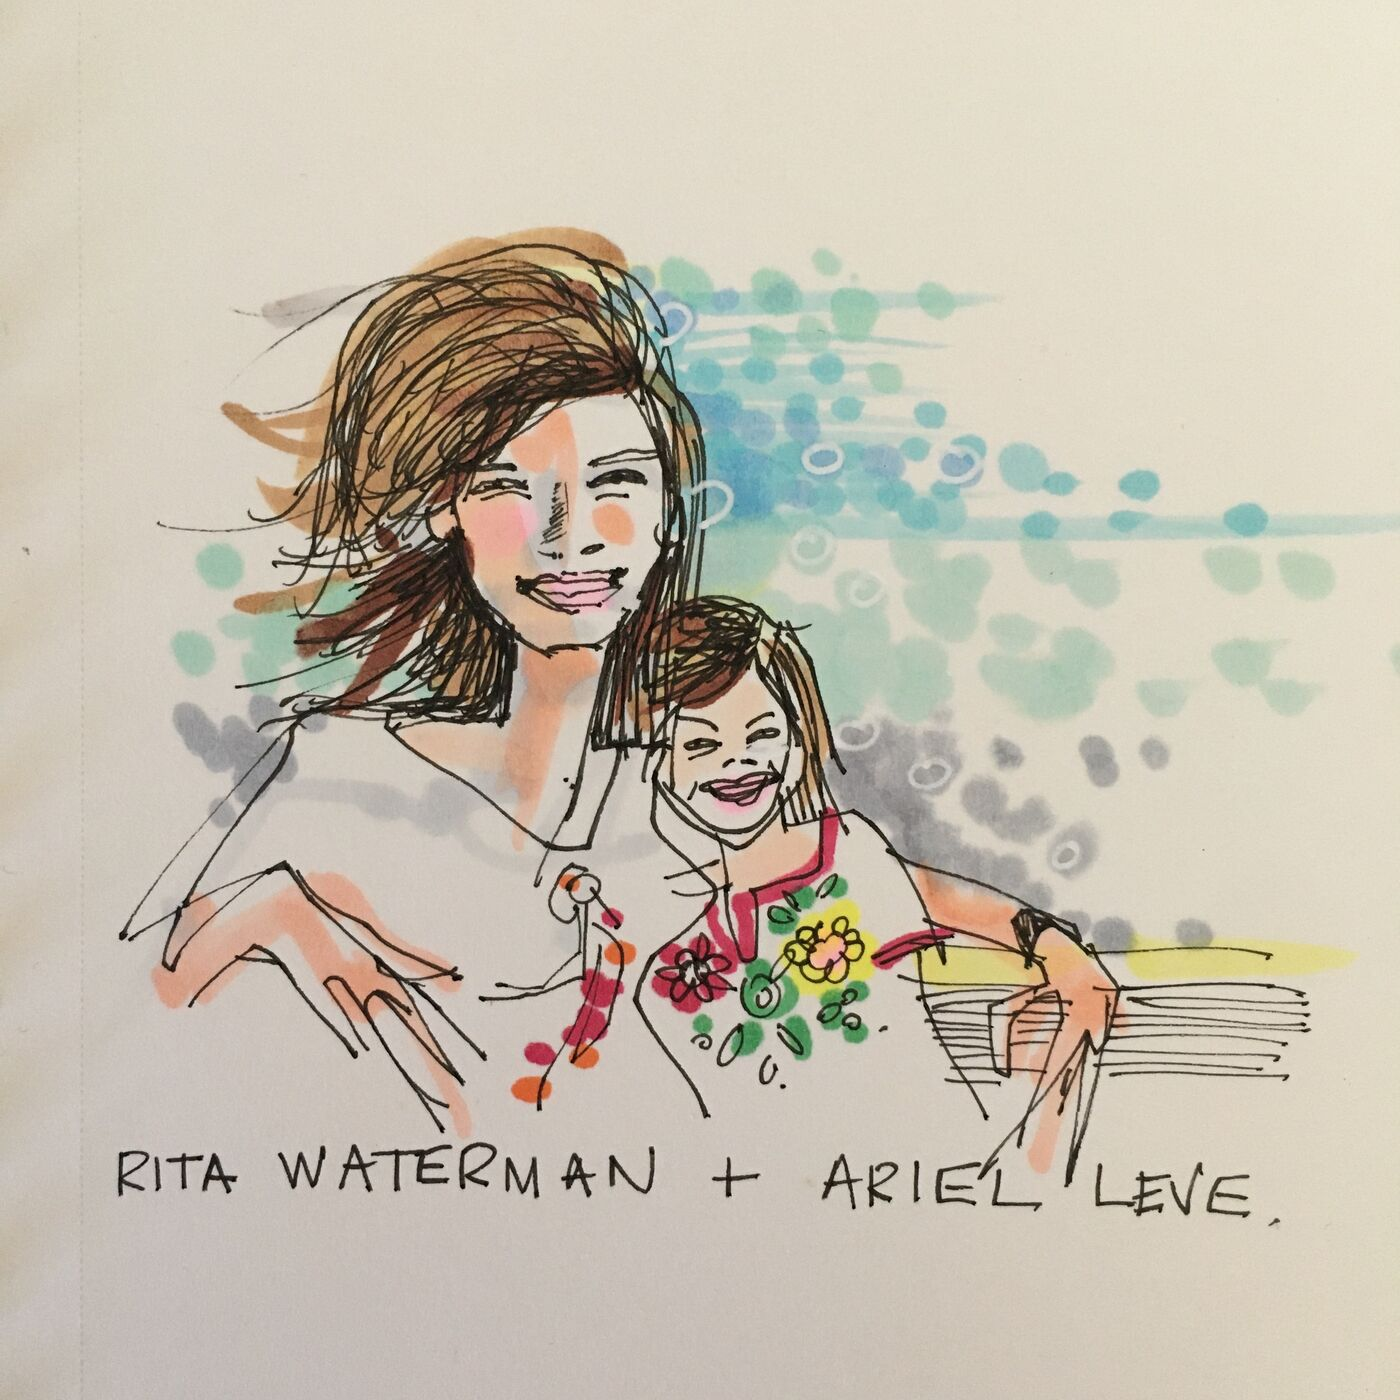 Rita Waterman, Soul Mother. A conversation with Ariel Leve